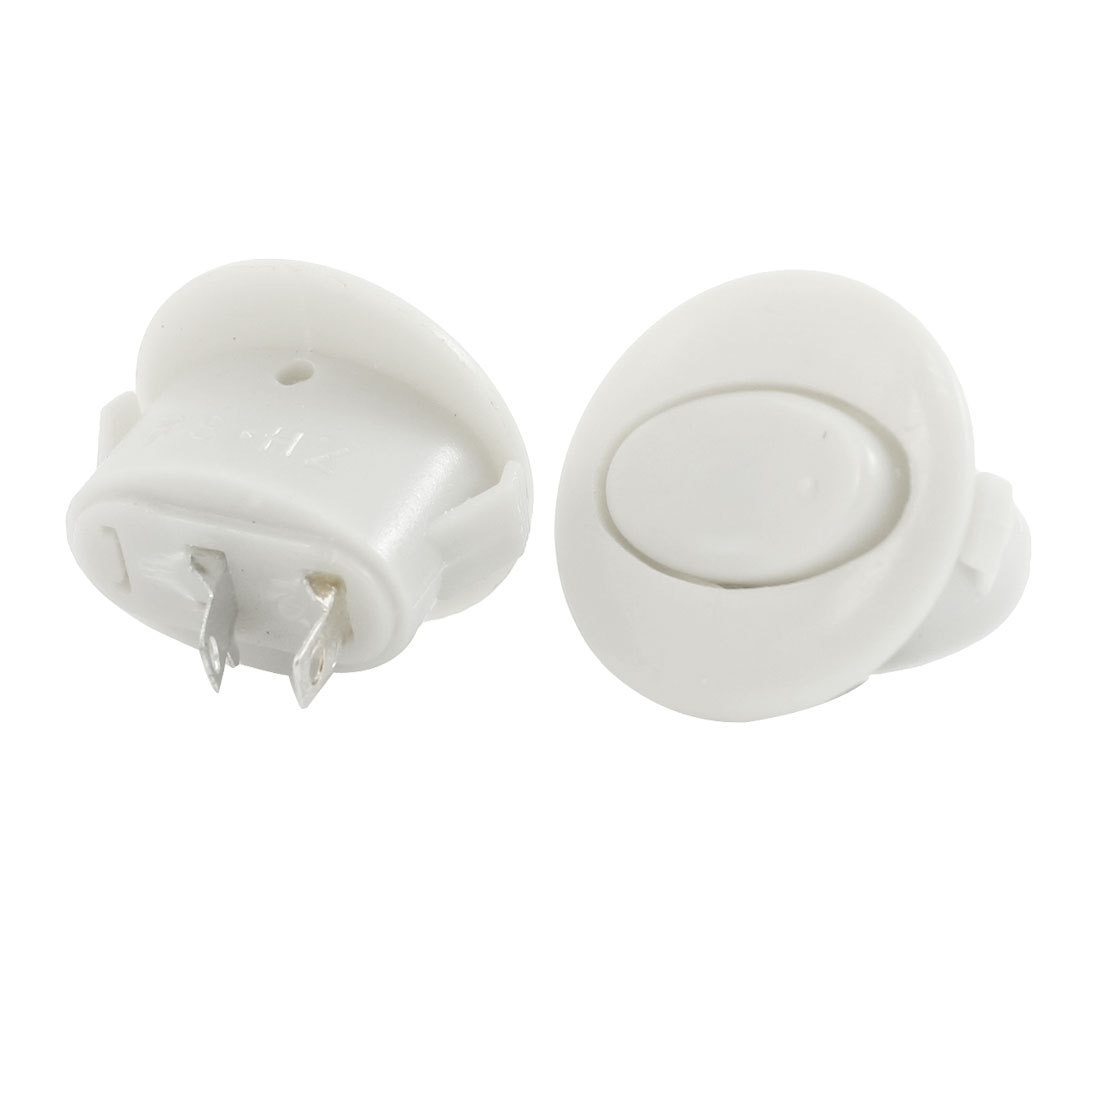 AC250V 1A Round Shape Button 2 Terminals Panel Mounting SPST Snap in Boat Rocker Switch 2pcs